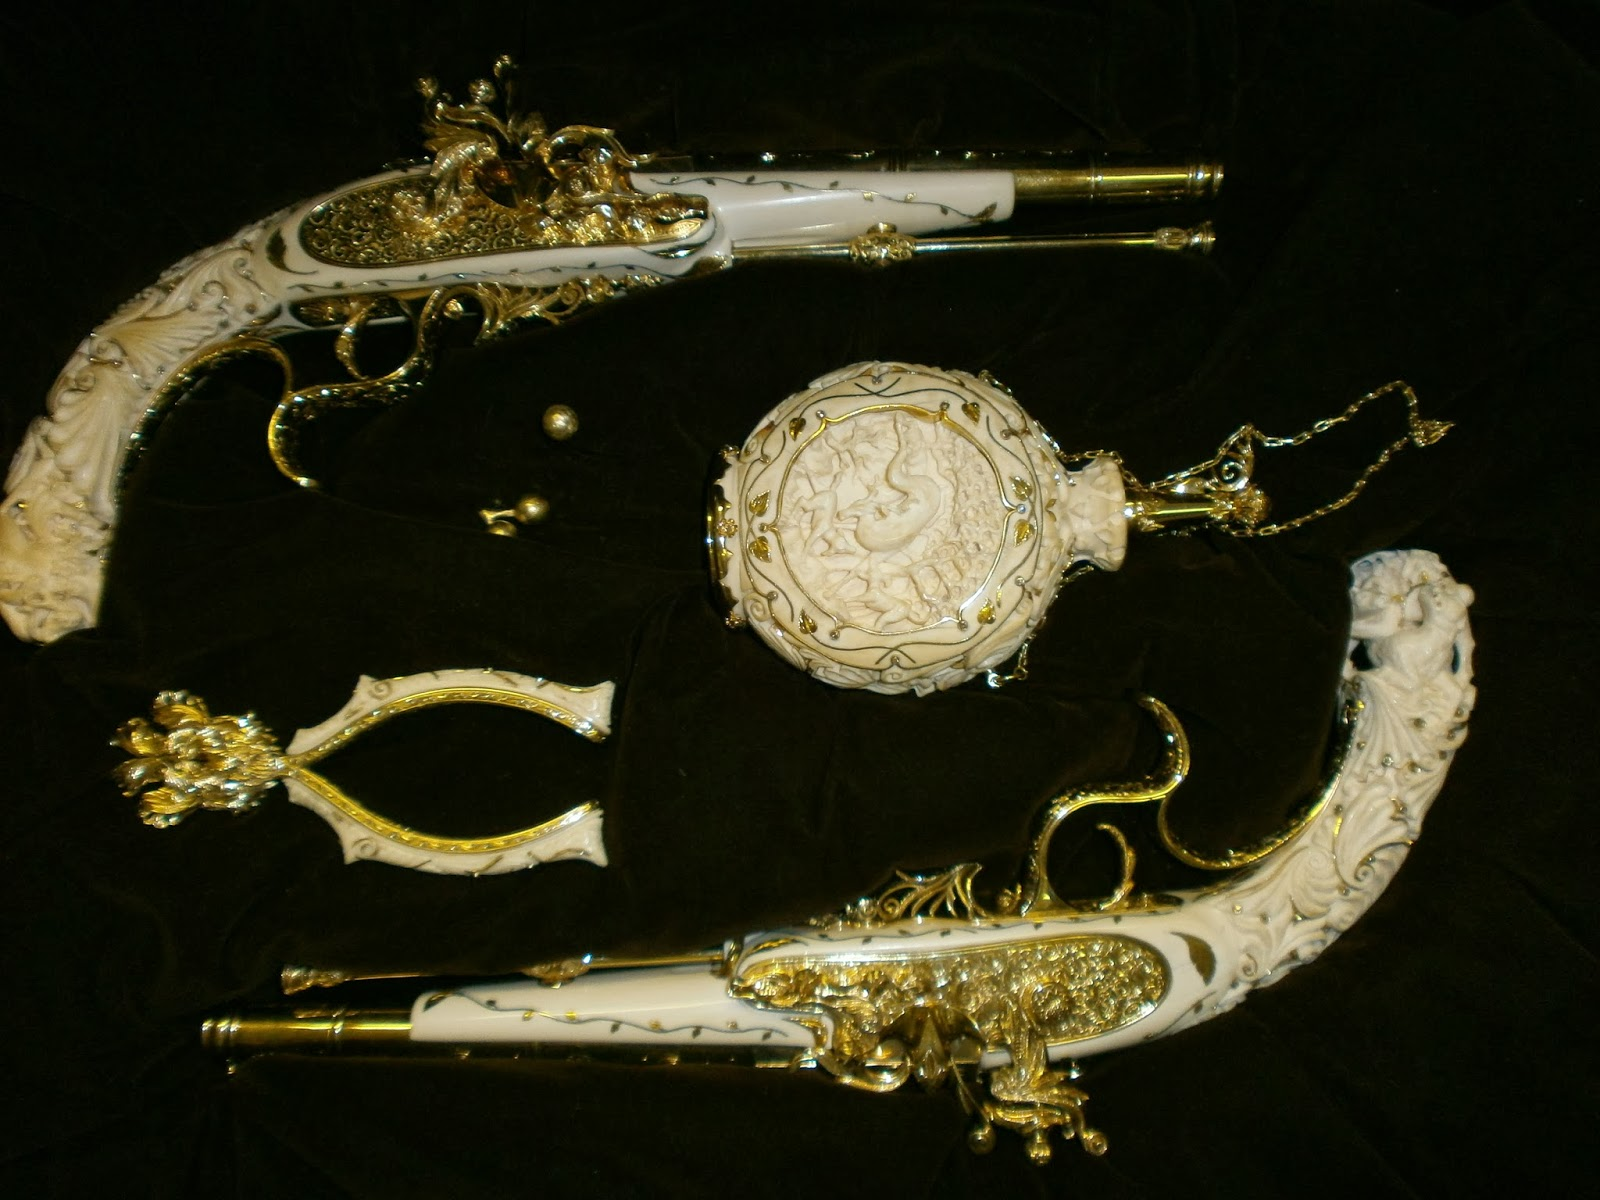 The eureka diamond - Figure 2 A Pistol Set Made Of Ivory And 18ct Yellow And White Gold Encrusted With Diamonds That Took Mr Sid Forman Three Years To Complete In 2013 The Set